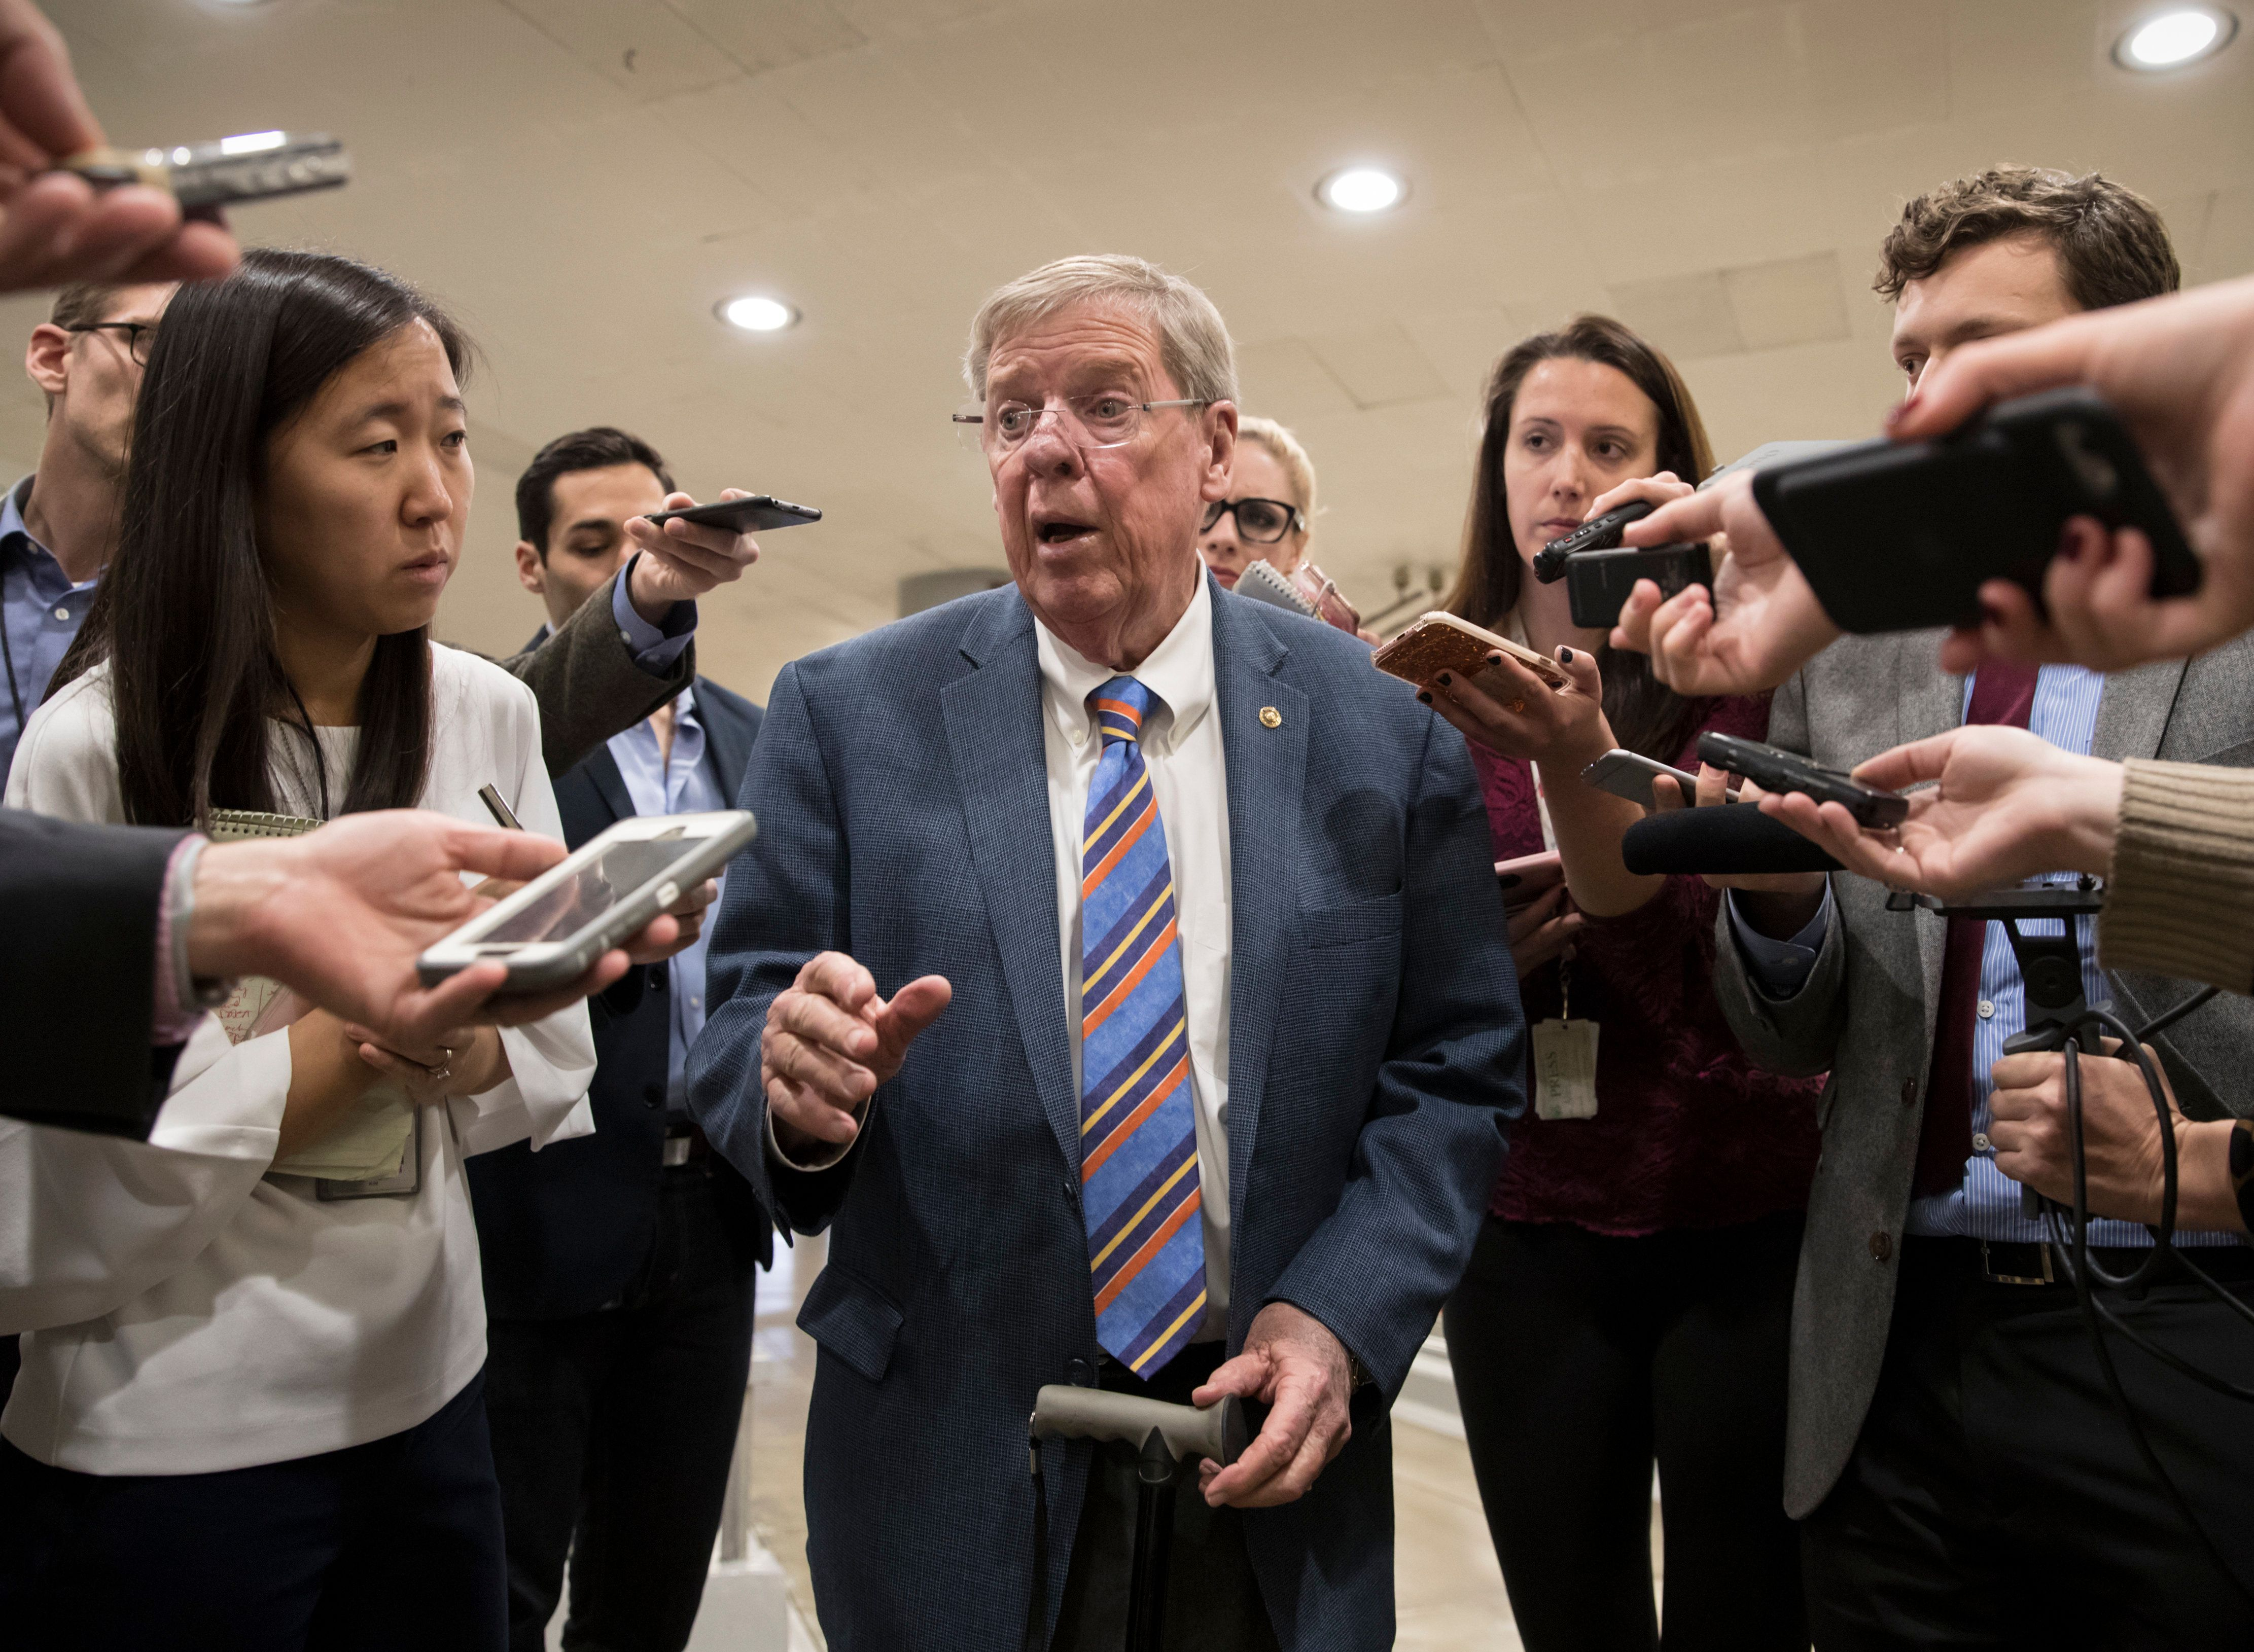 Sen. Johnny Isakson, R-Ga., a member of the tax-writing Senate Finance Committee, takes questions from reporters as he and other lawmakers head to the Senate floor for votes on Capitol Hill in Washington, Monday evening, Nov. 27, 2017. President Donald Trump and Senate Republicans are scrambling to change a Republican tax bill in an effort to win over holdout GOP senators and pass a tax package by the end of the year. (AP Photo/J. Scott Applewhite)